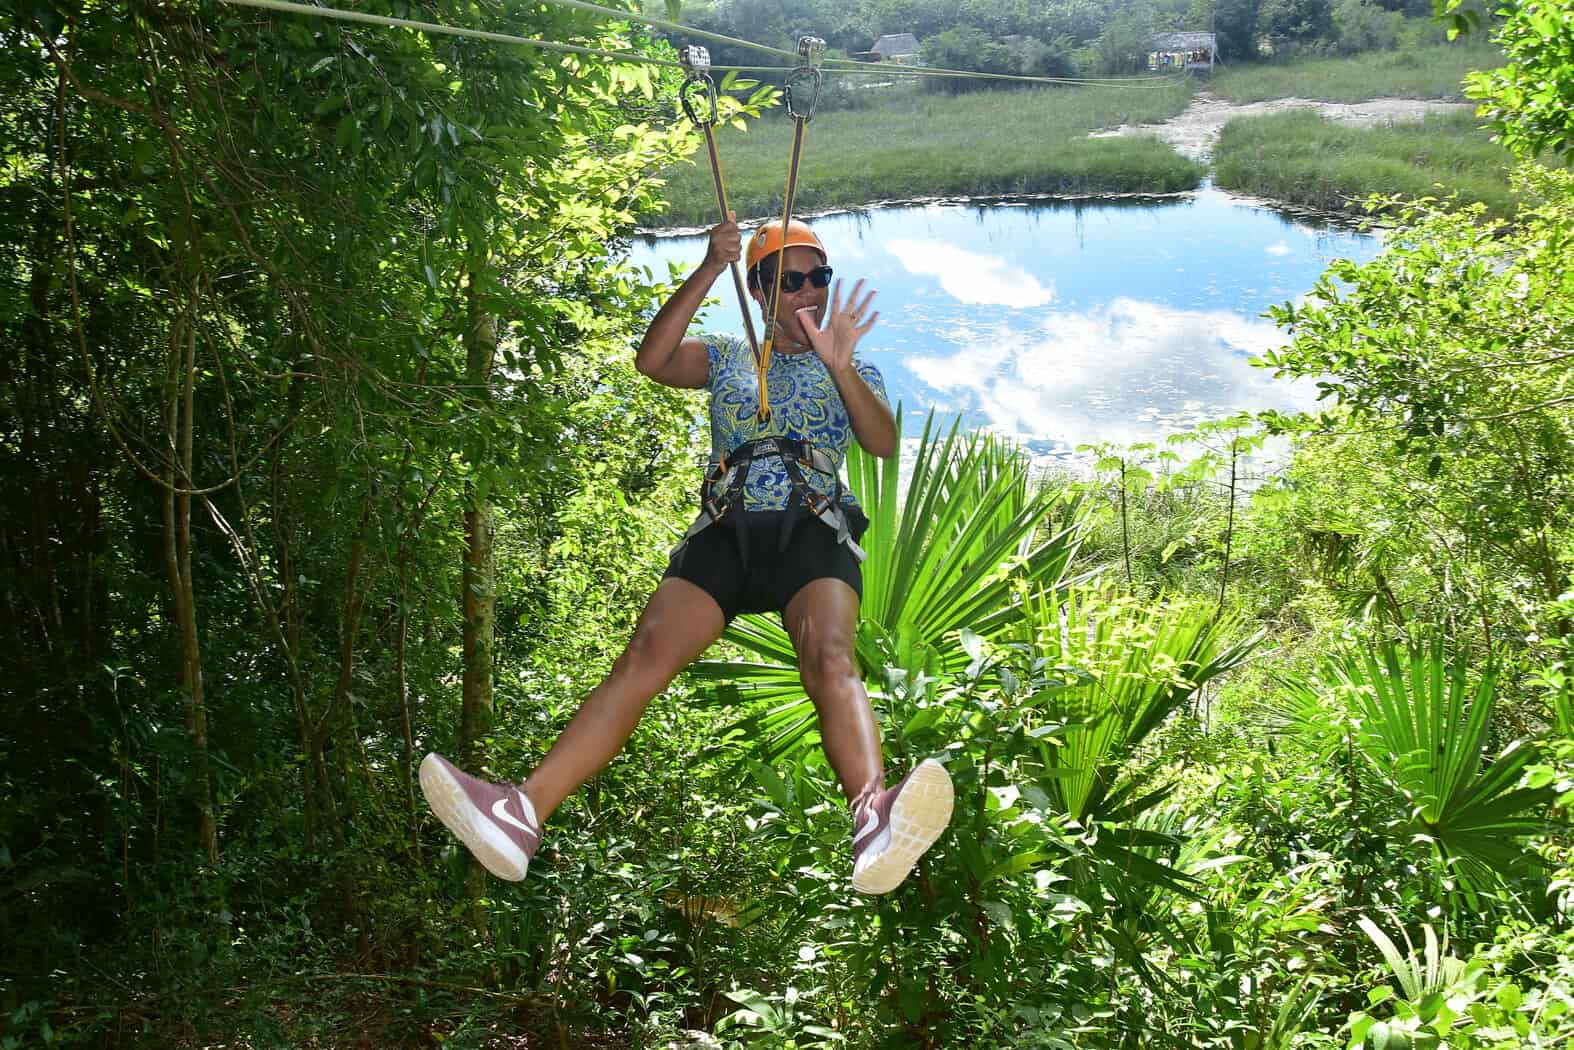 Zip line in Mexico - My Cornacopia